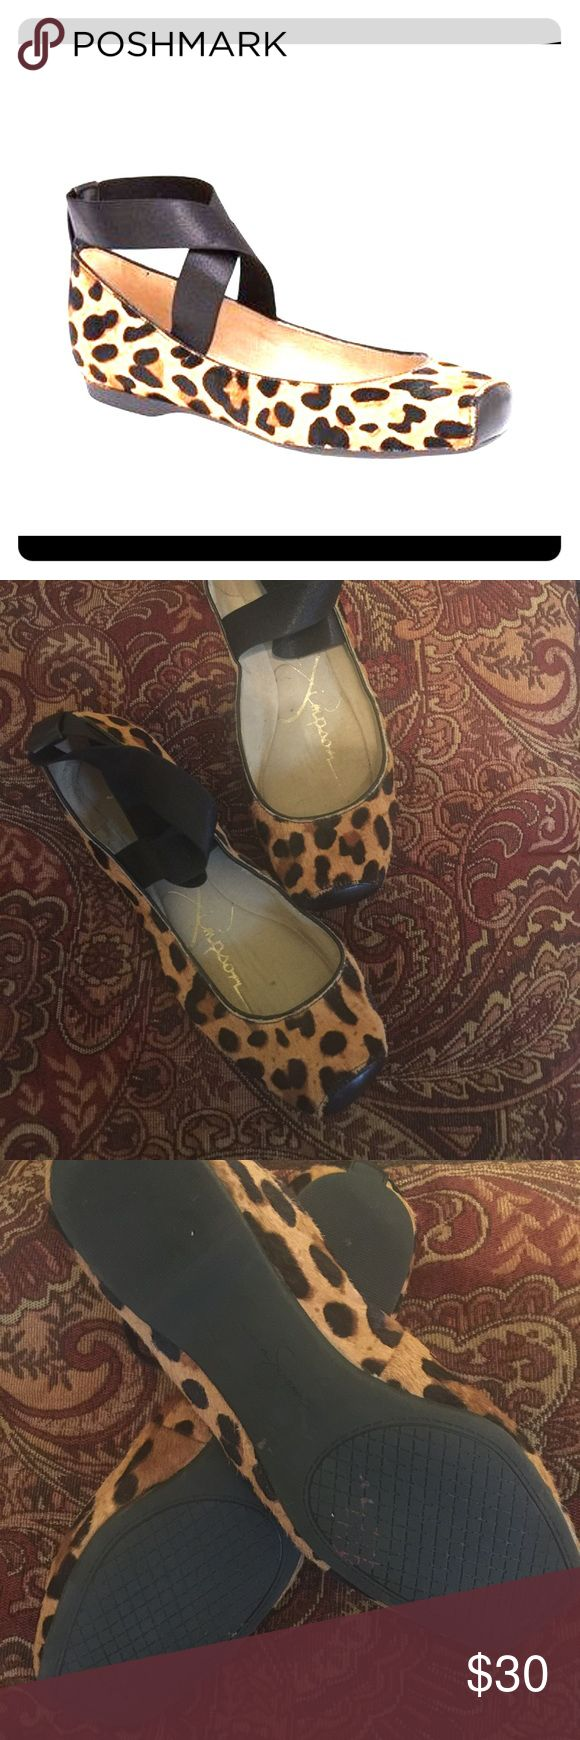 Jessica Simpson Ballet Flats These adorable flats will keep you in your toes!  The animal print is timeless and will be a staple wardrobe piece! Jessica Simpson Shoes Flats & Loafers